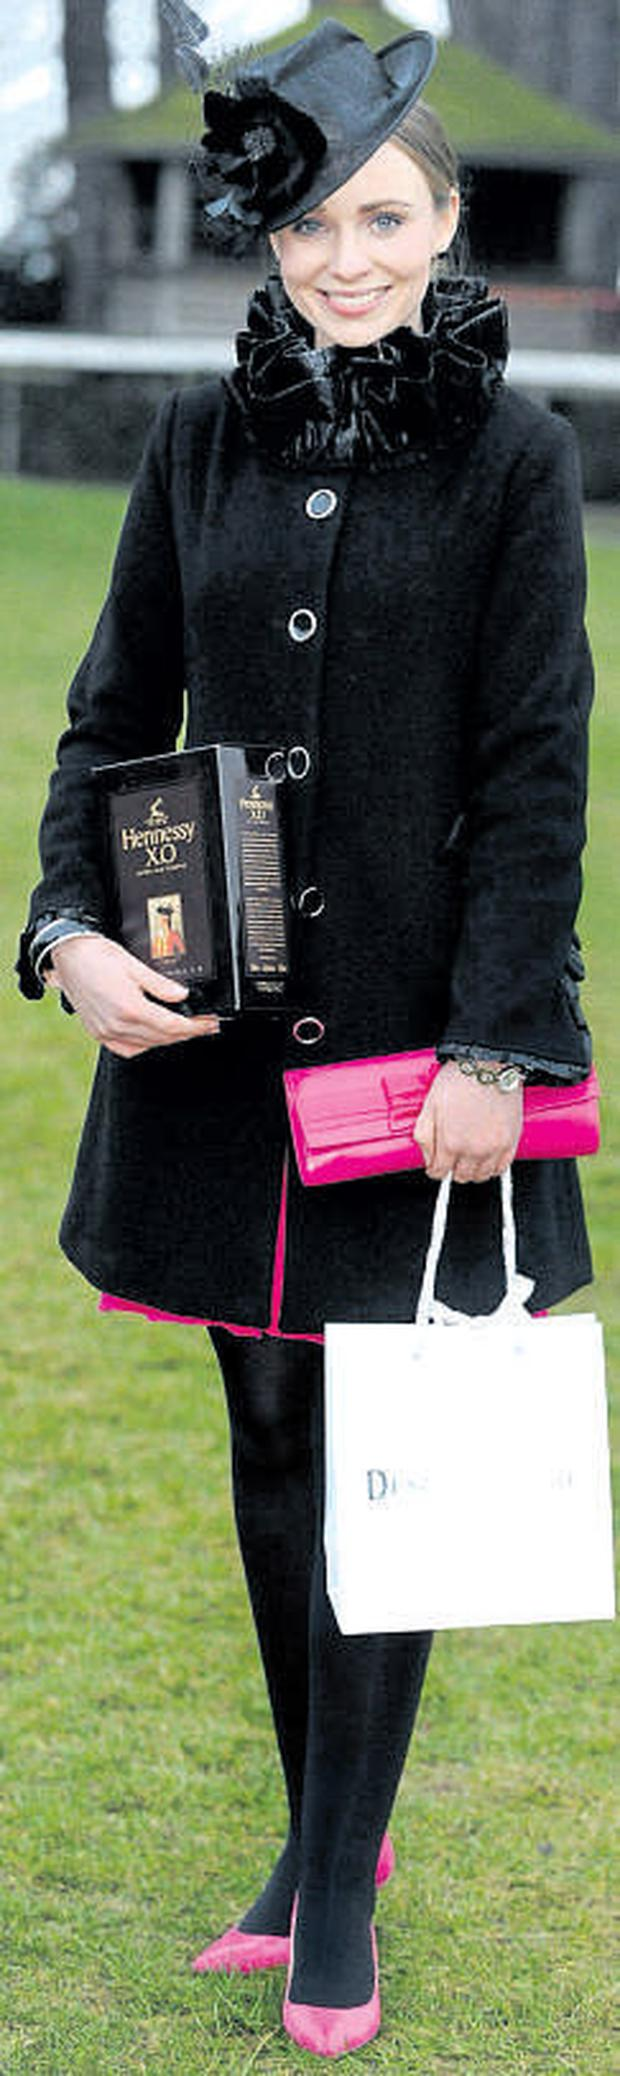 Charmaine Kenny at the Hennessy Gold Cup